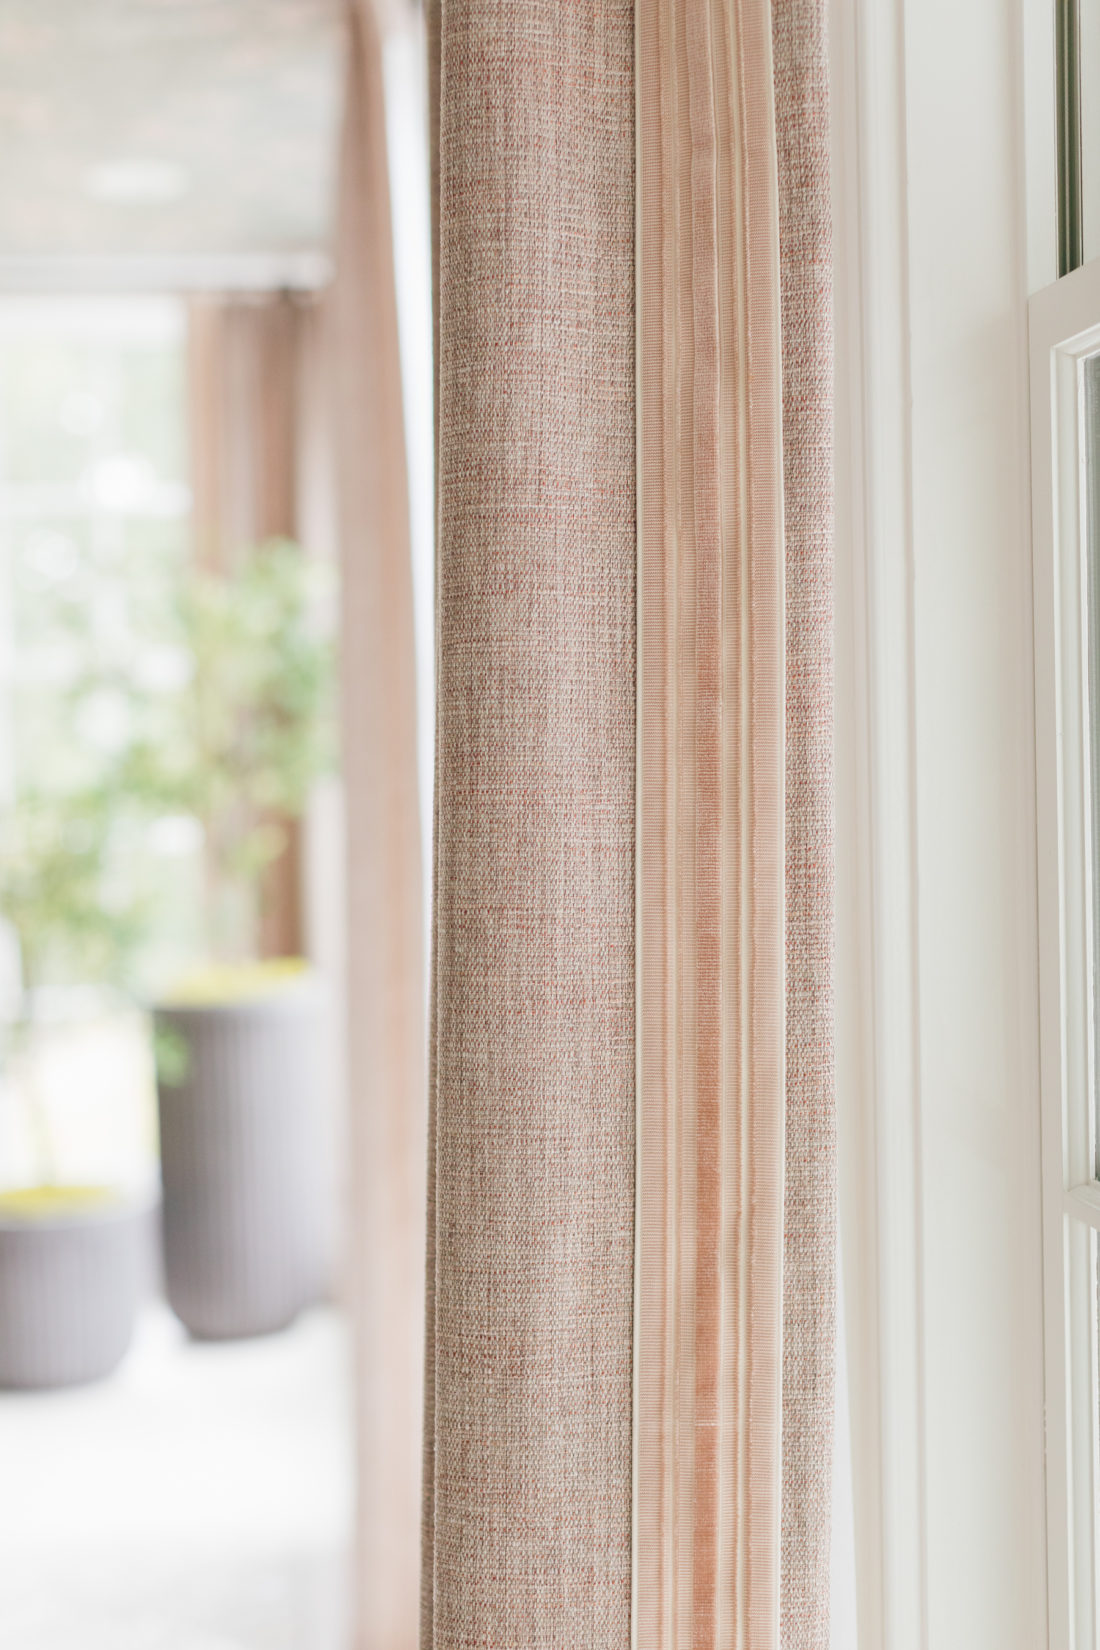 A closeup of the Schumacher Drapery in Eva Amurri Martino's newly renovated dining room